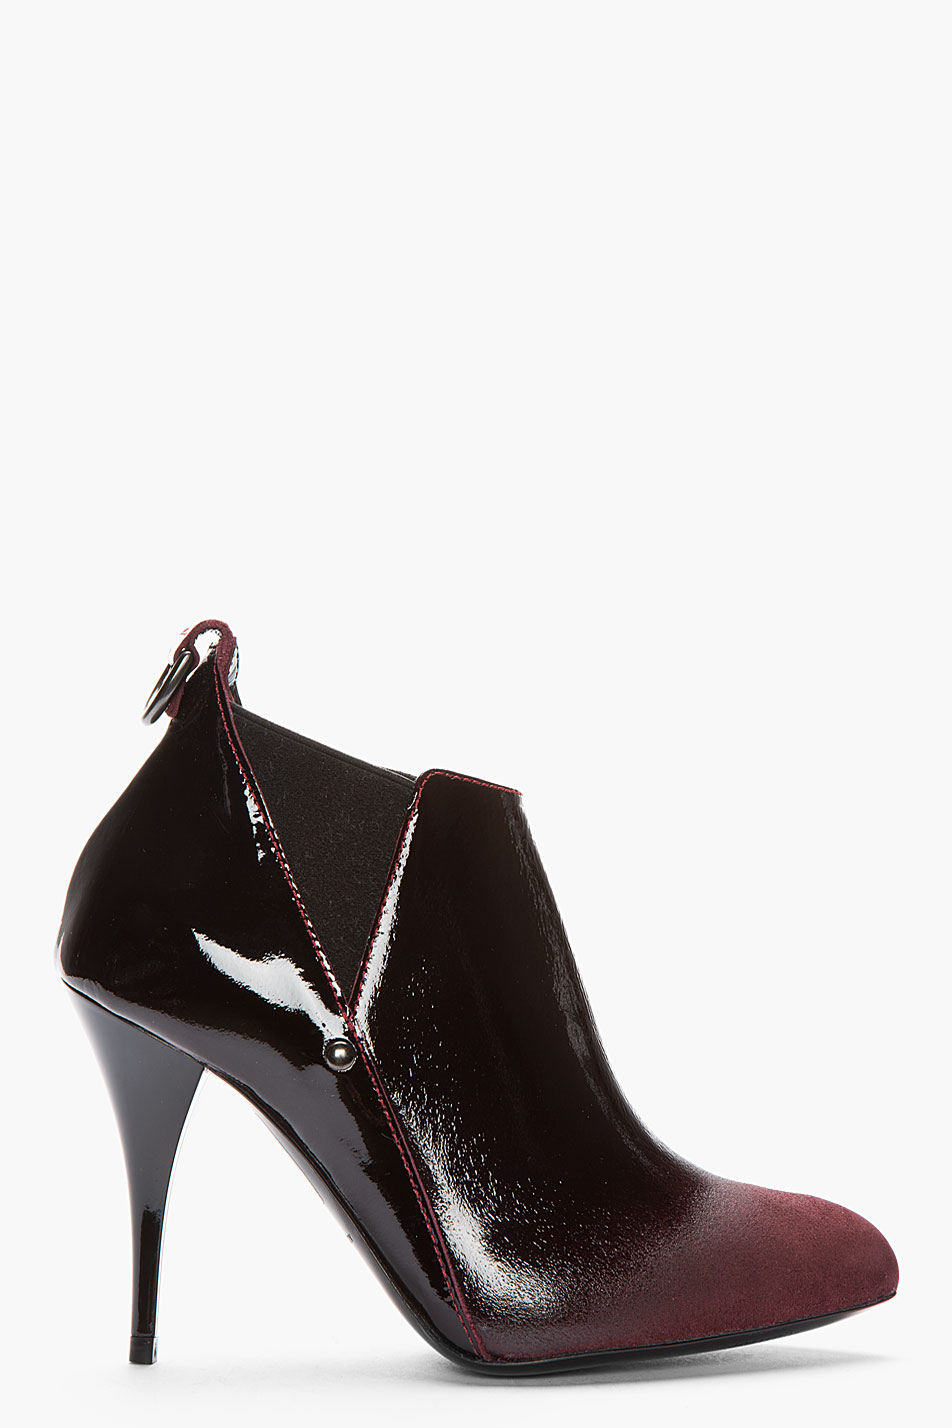 mcq by mcqueen burgundy patent leather ombre